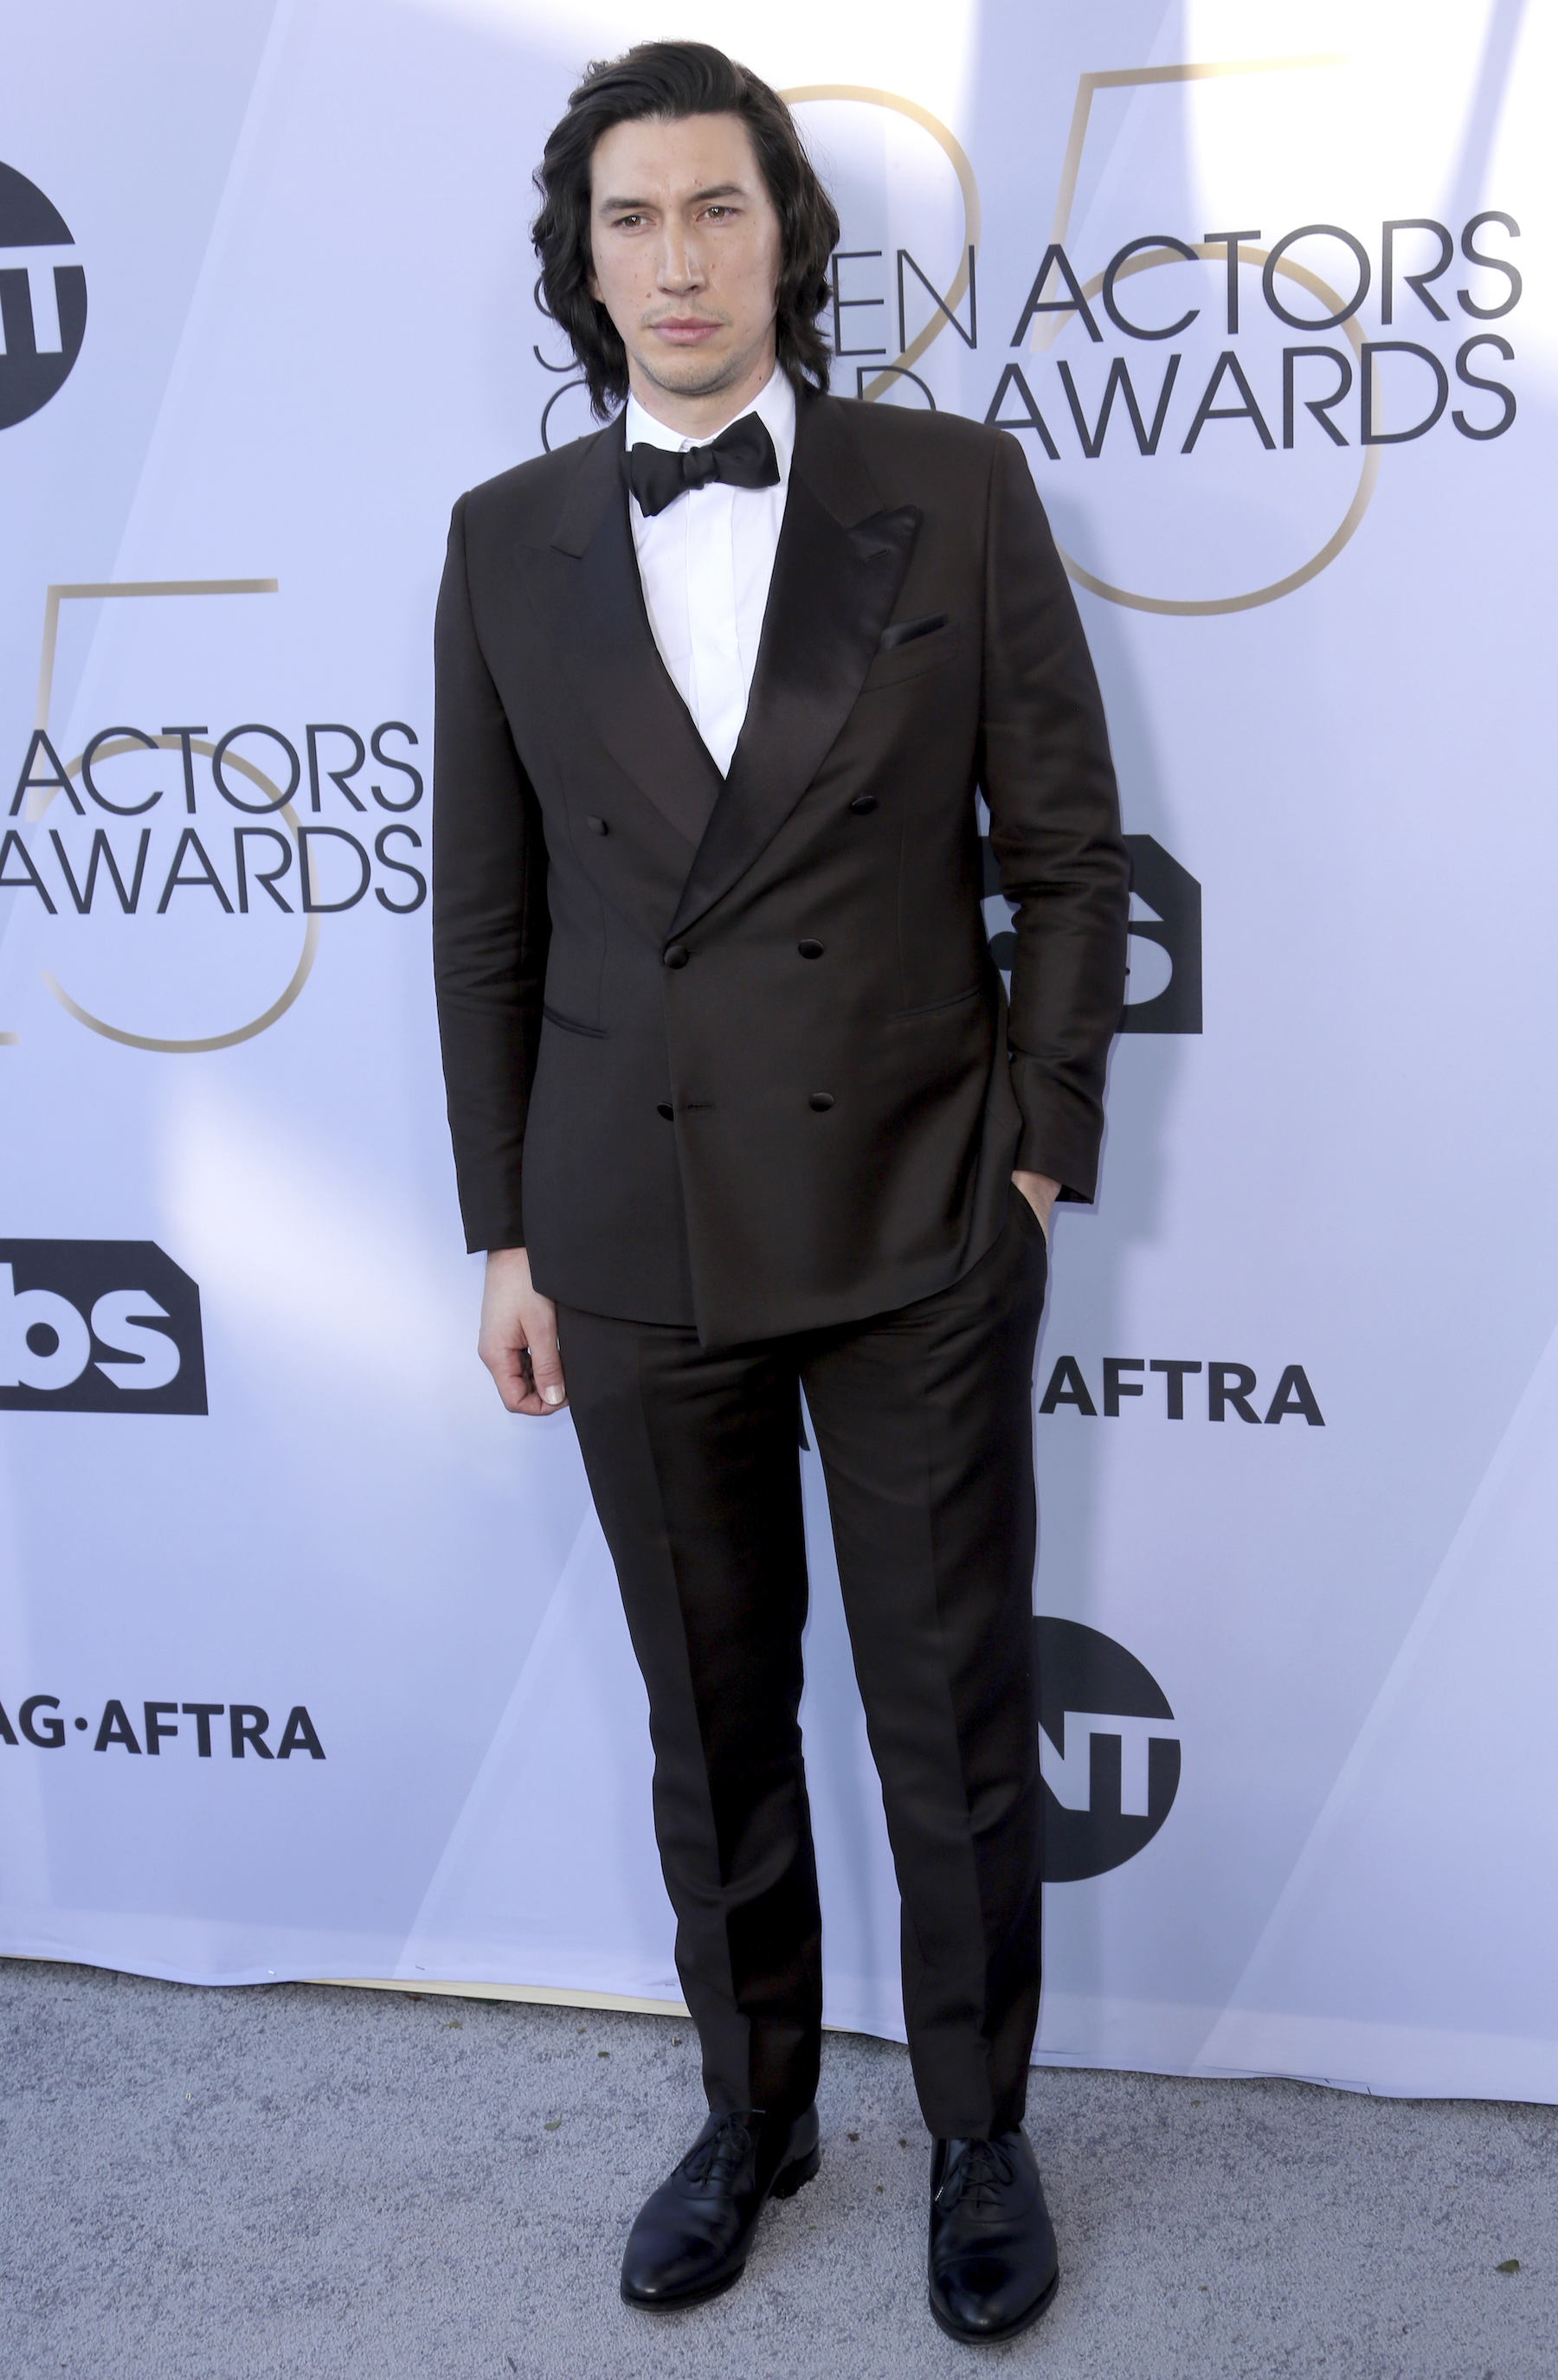 "<div class=""meta image-caption""><div class=""origin-logo origin-image ap""><span>AP</span></div><span class=""caption-text"">Adam Driver arrives at the 25th annual Screen Actors Guild Awards at the Shrine Auditorium & Expo Hall on Sunday, Jan. 27, 2019, in Los Angeles. (Willy Sanjuan/Invision/AP)</span></div>"